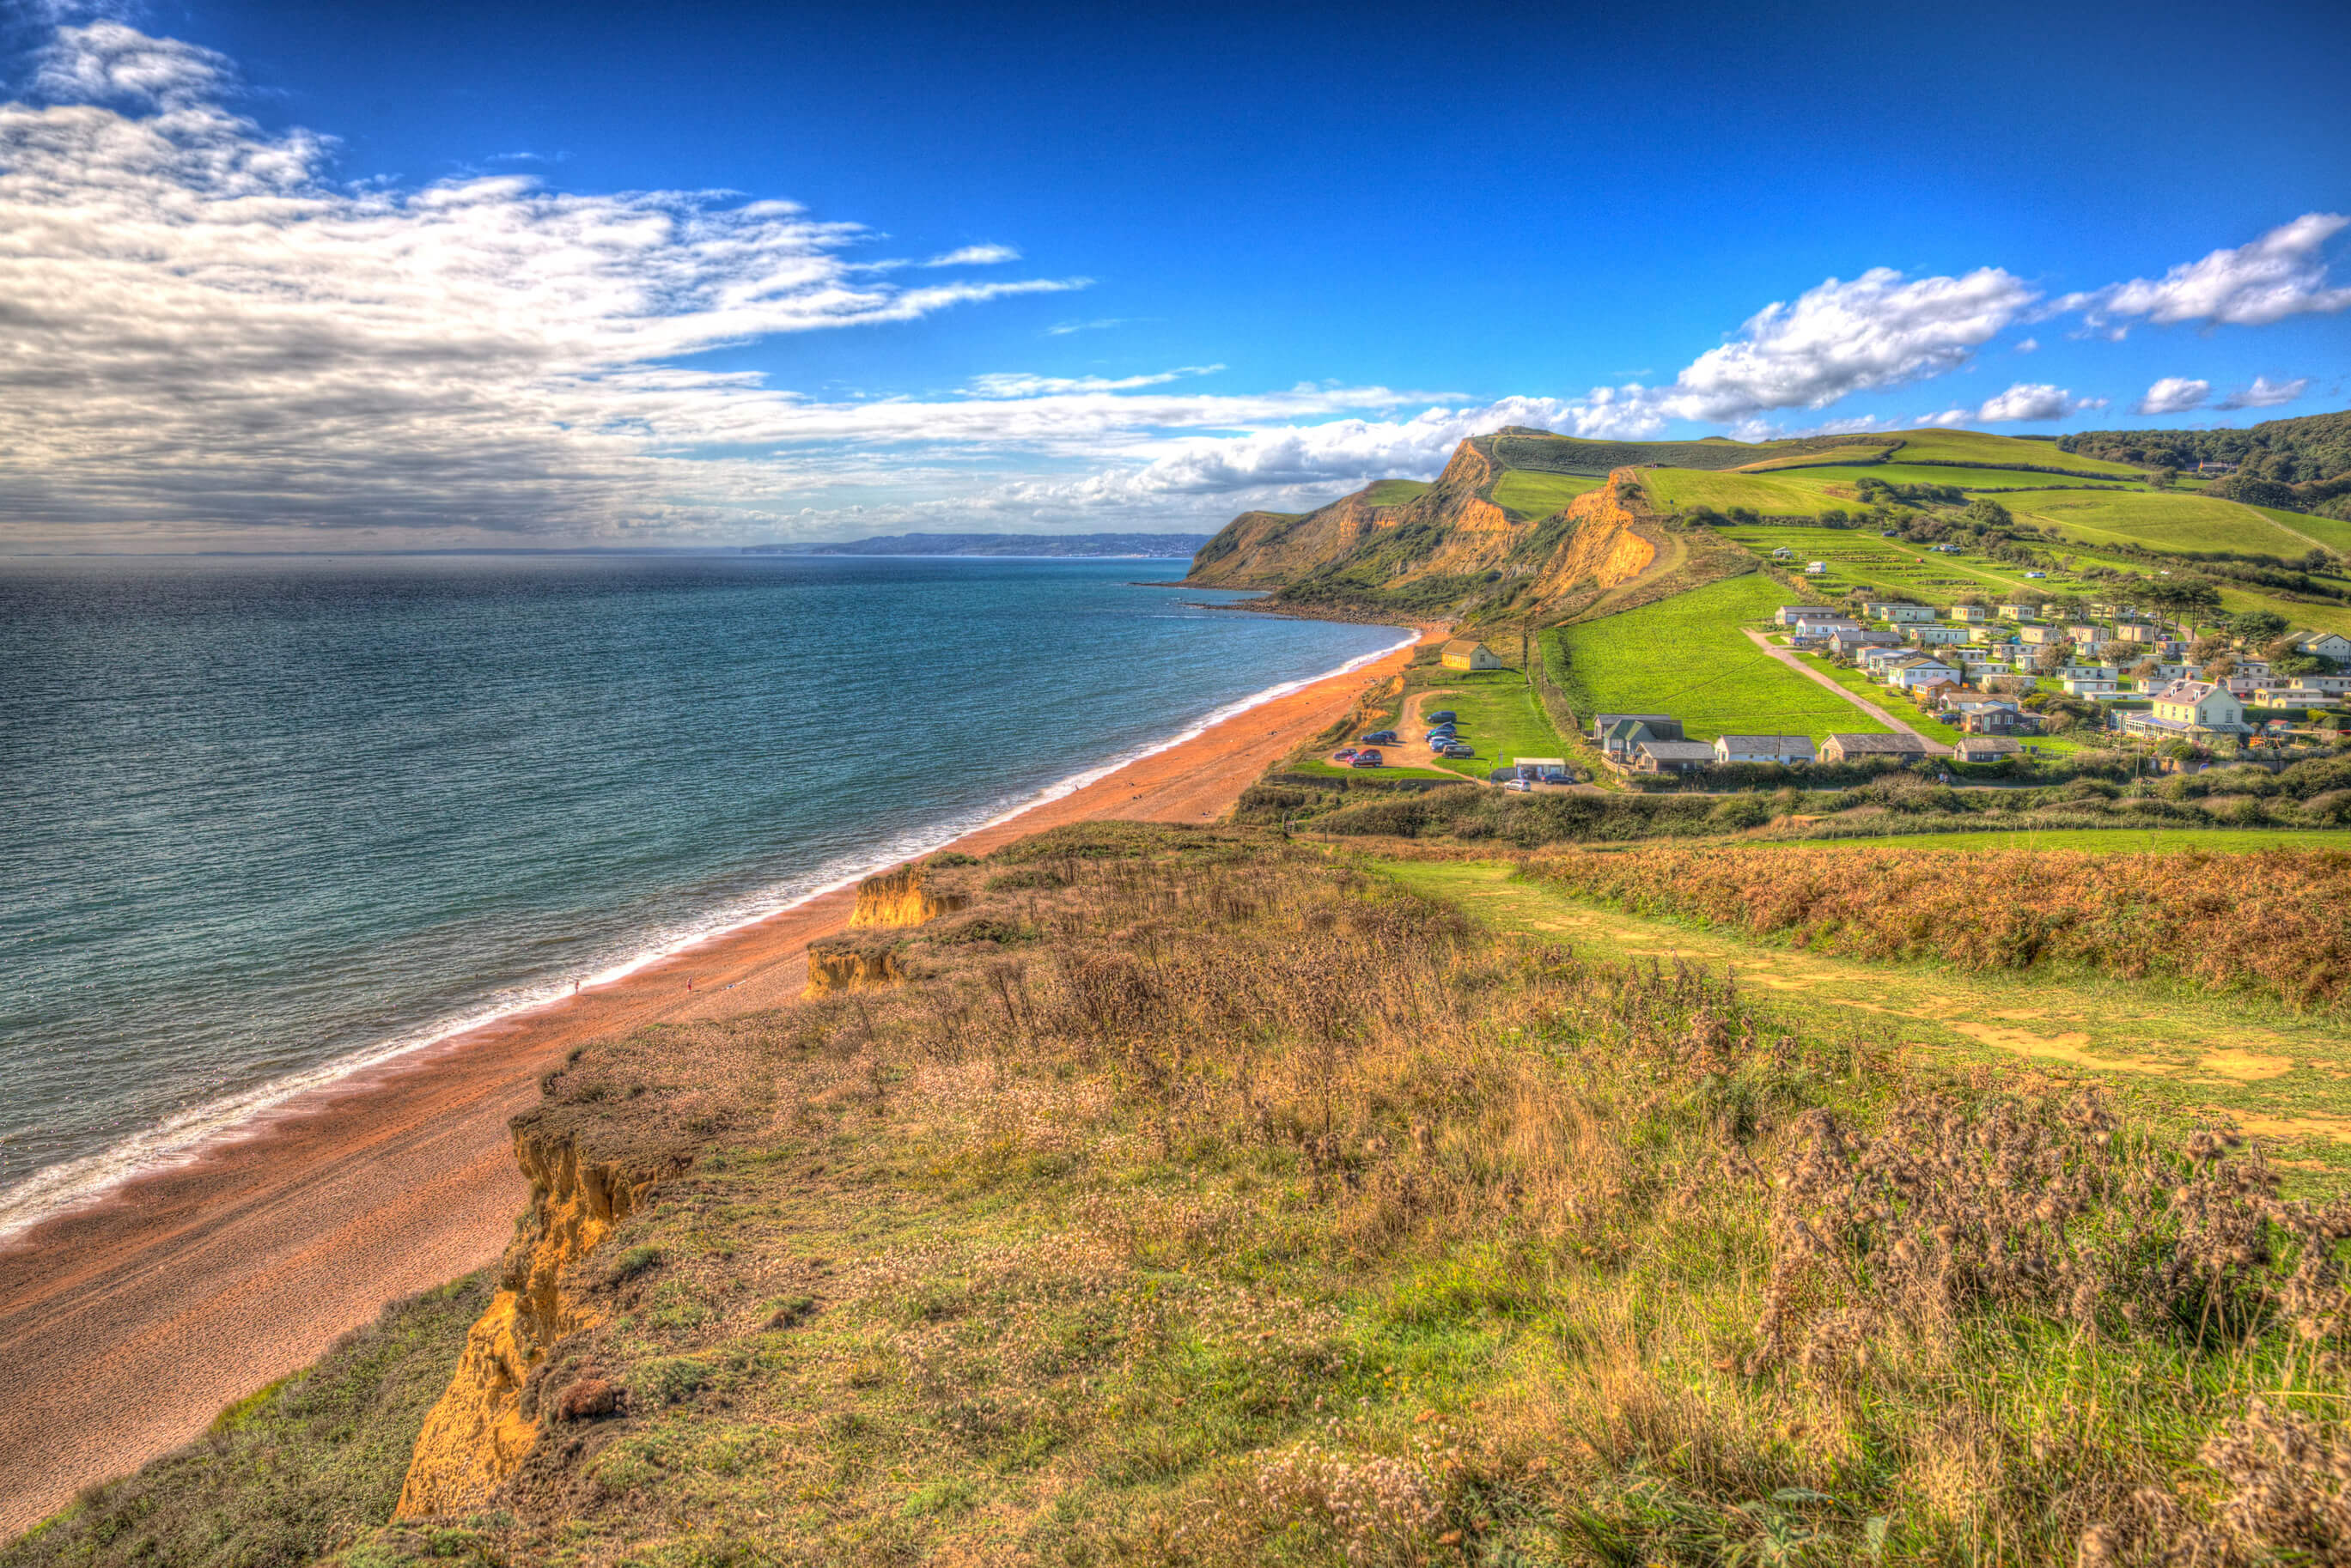 Eype Dorset Jurassic coast in bright colourful HDR south of Bridport and near West Bay England UK.